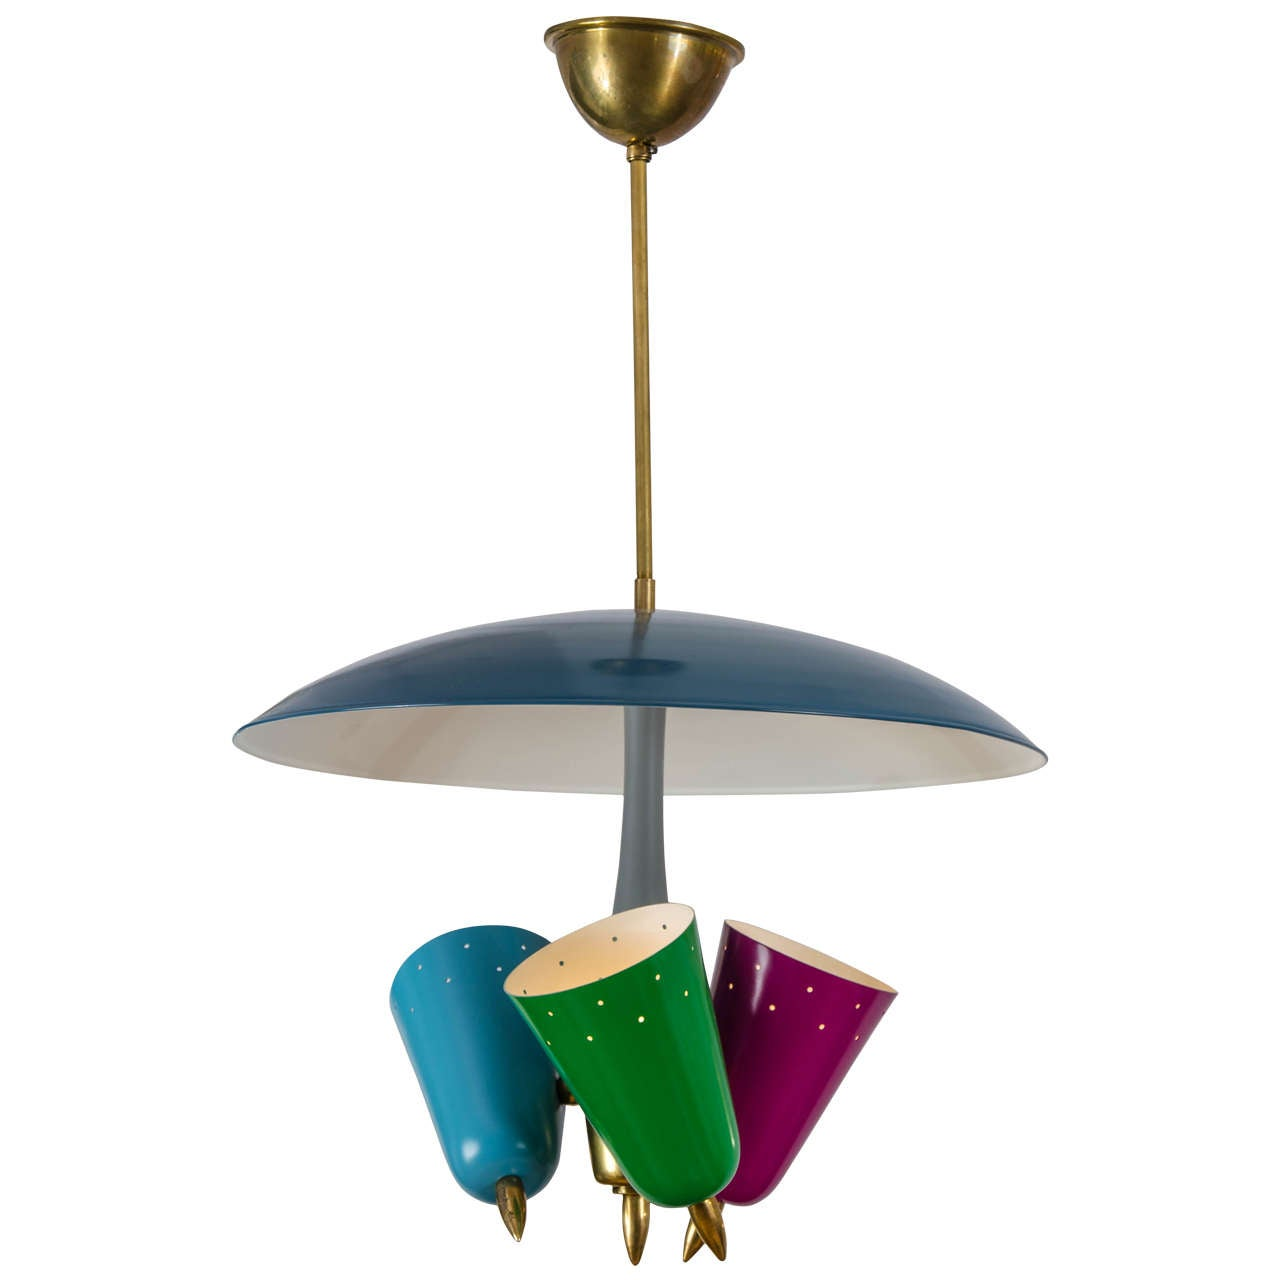 Five Color Italian Pendant Lamp For Sale